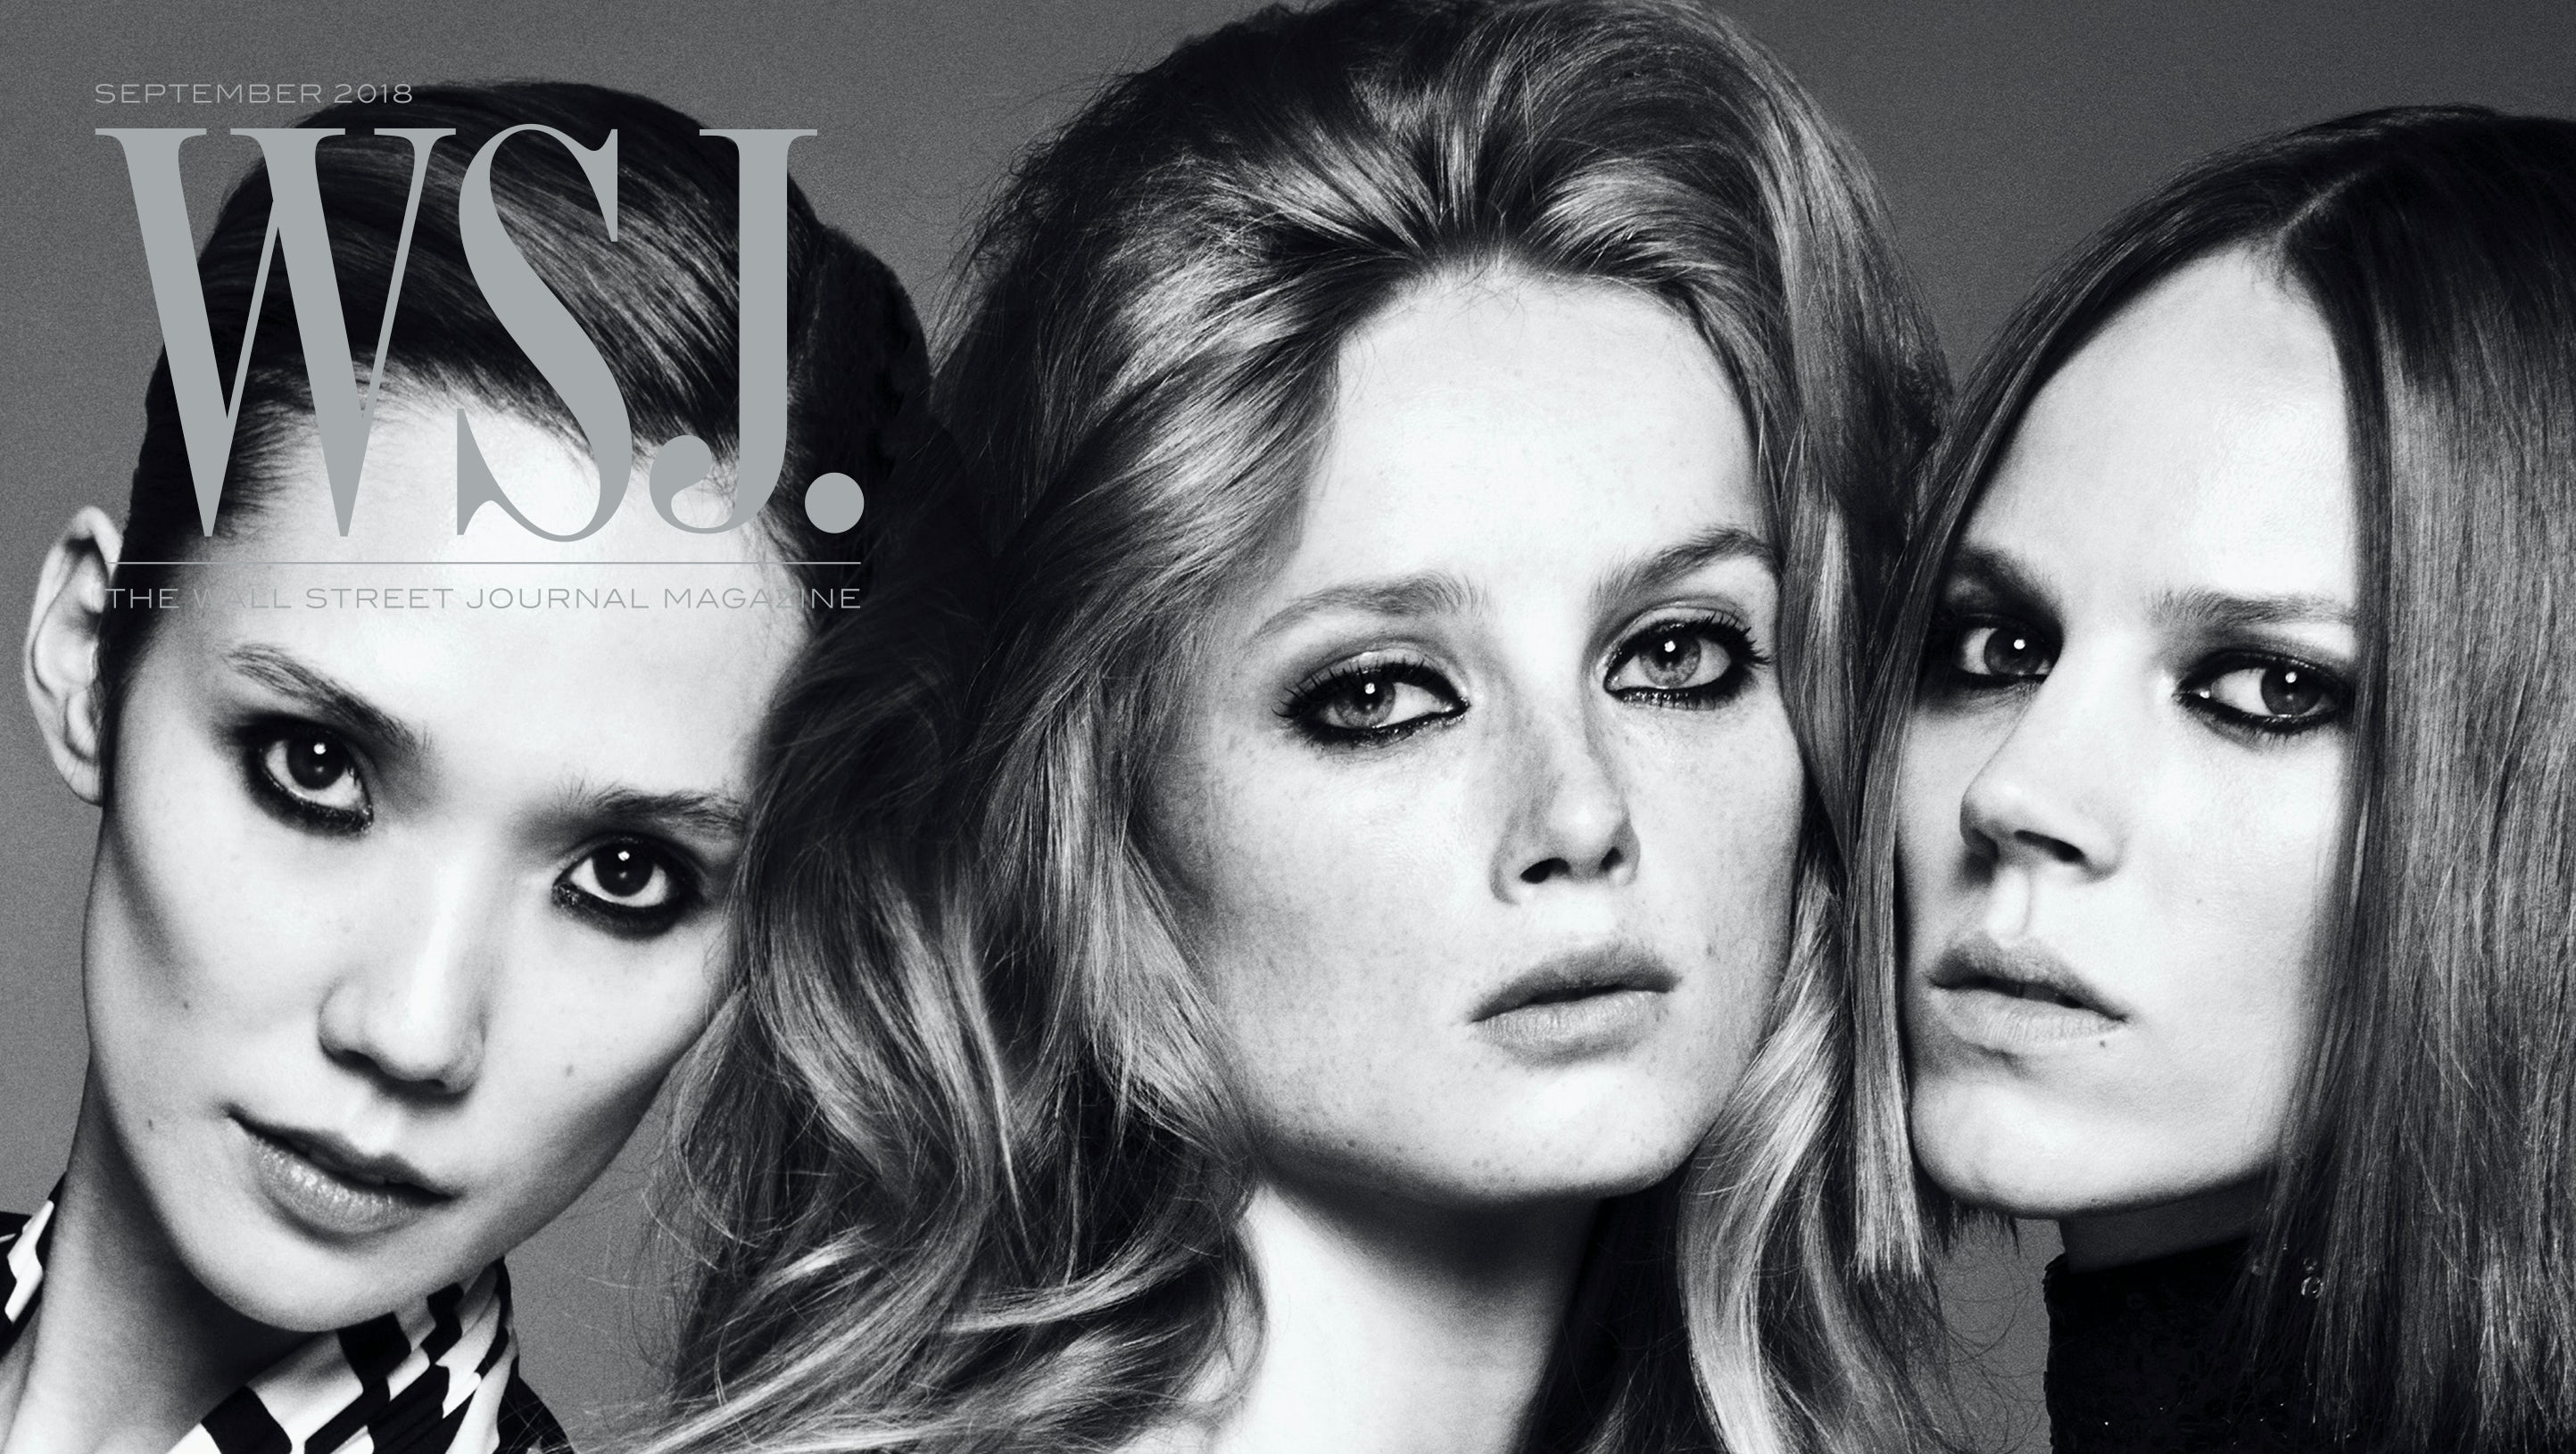 WSJ. Magazine's Tenth Anniversary Issue Is Big, But Its Digital Ambitions Are Bigger